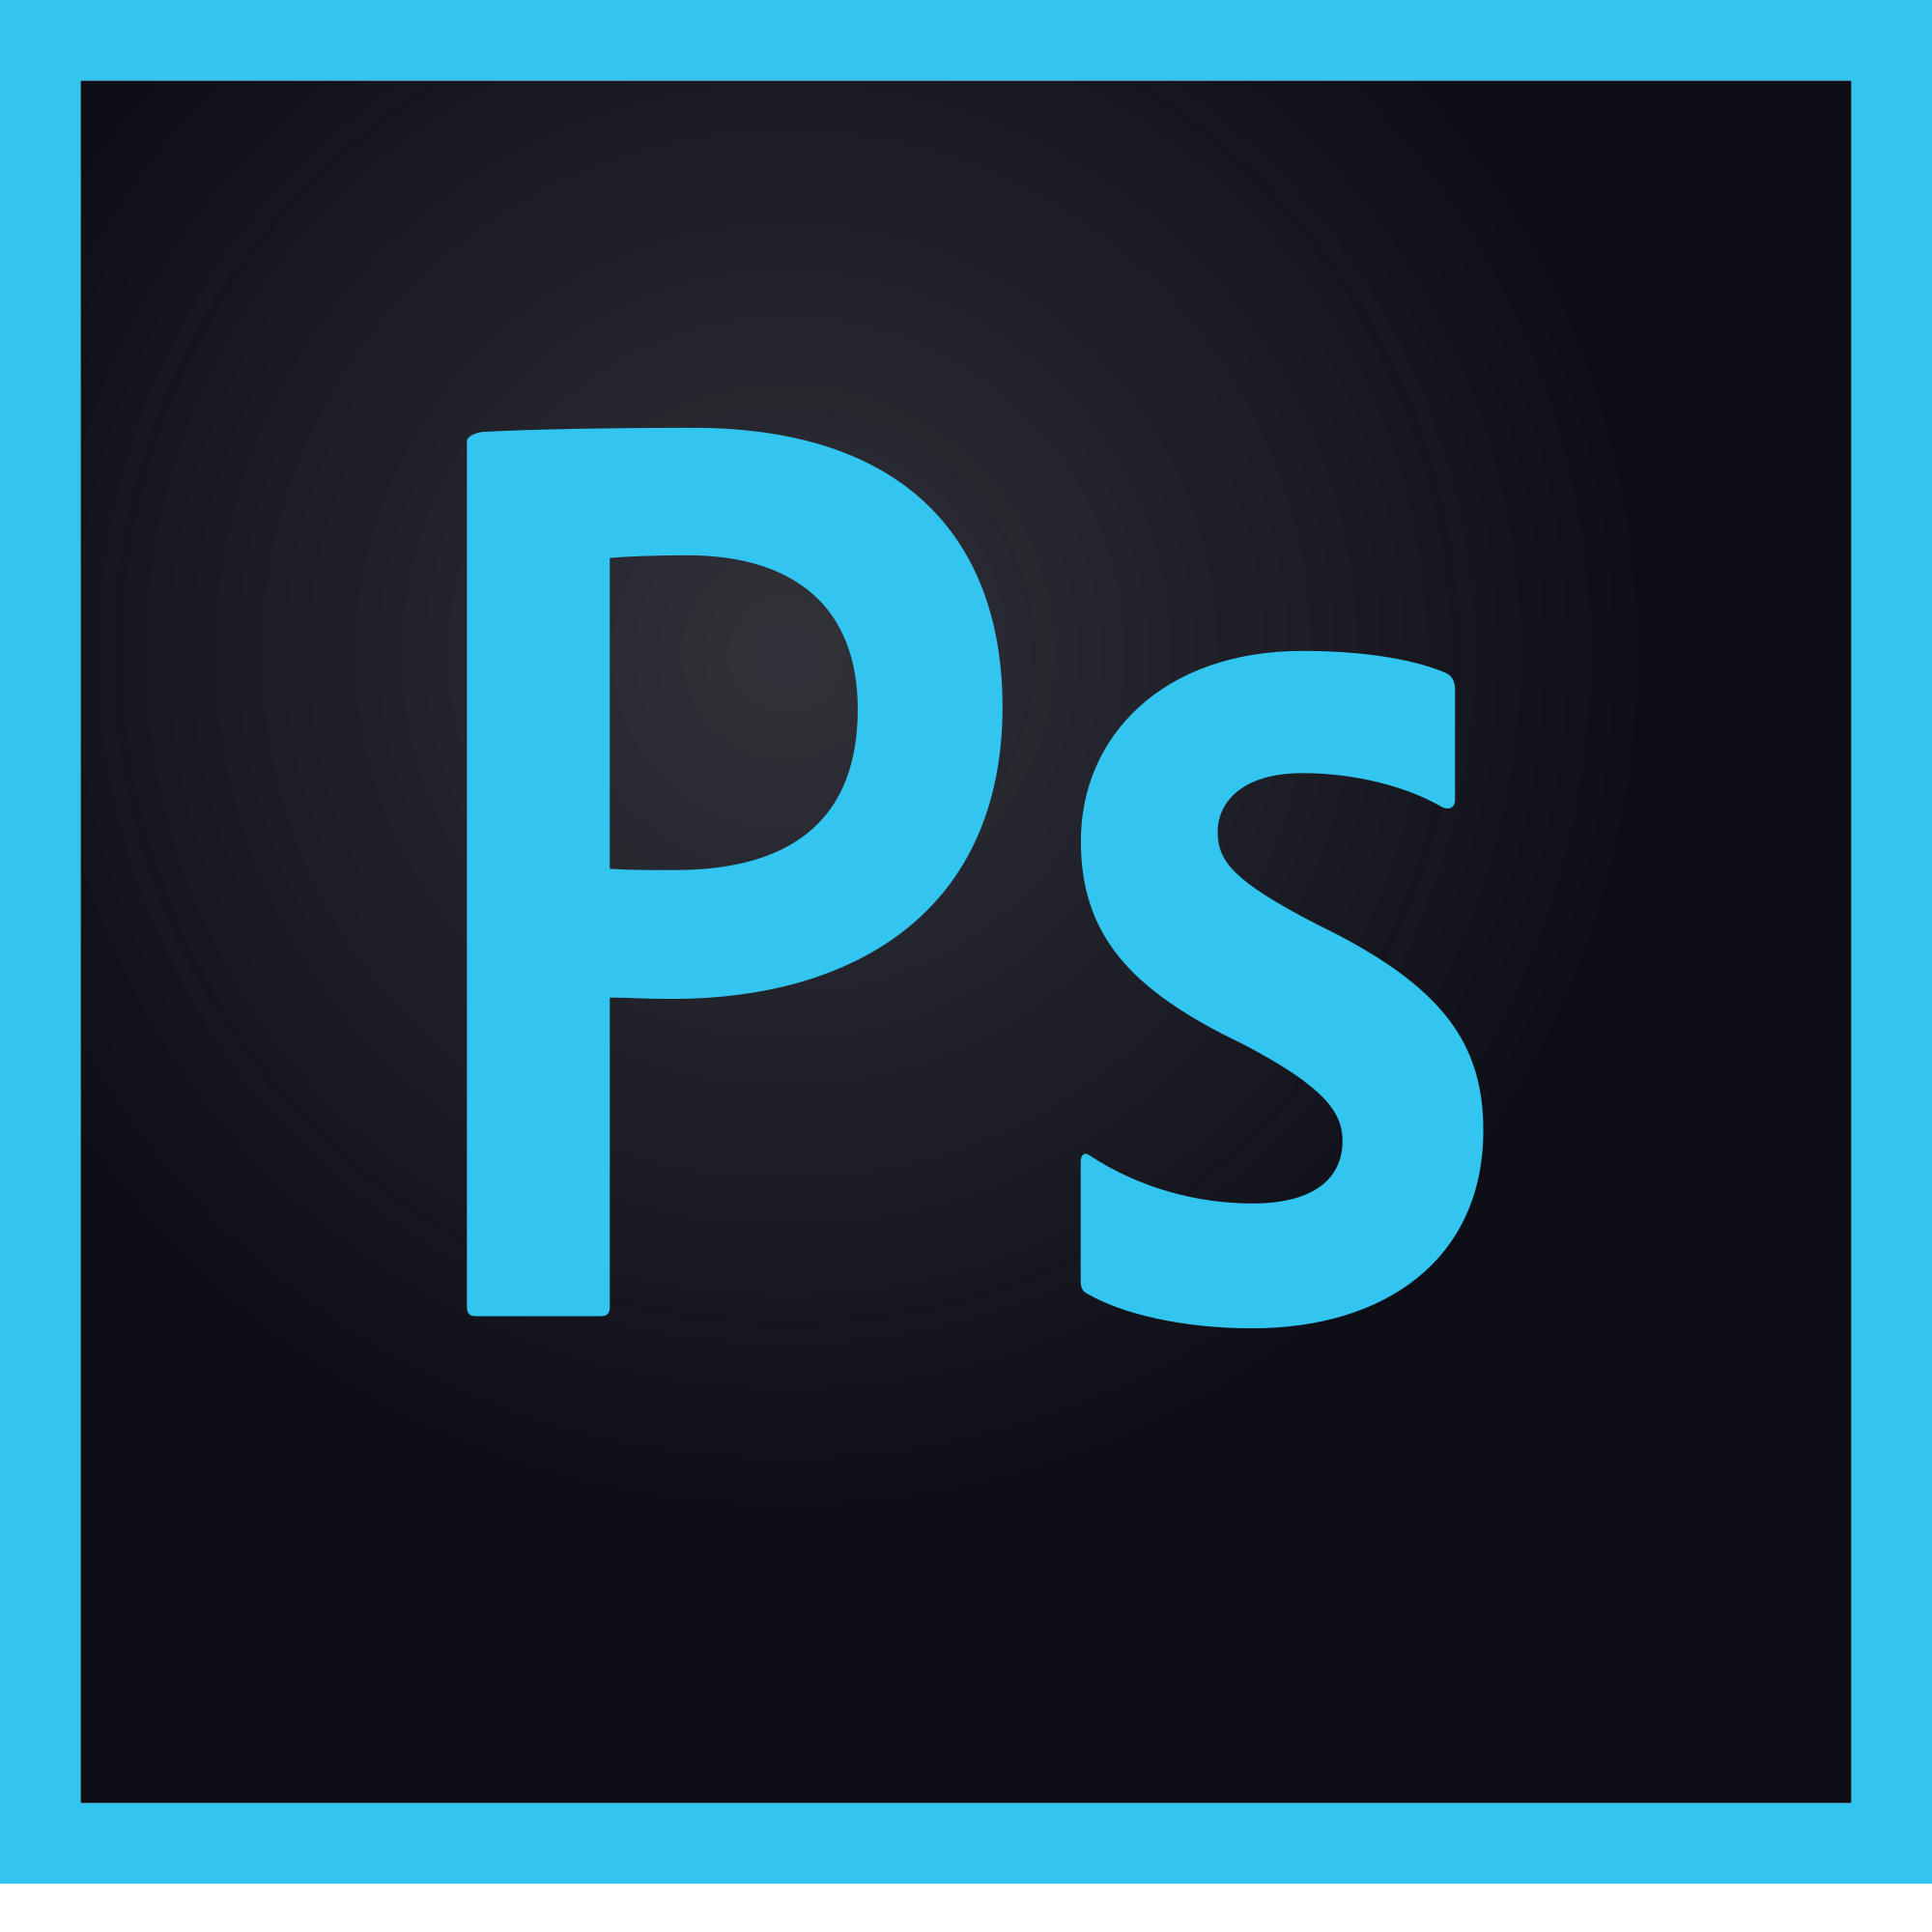 Photoshop save transparent png. How to make a